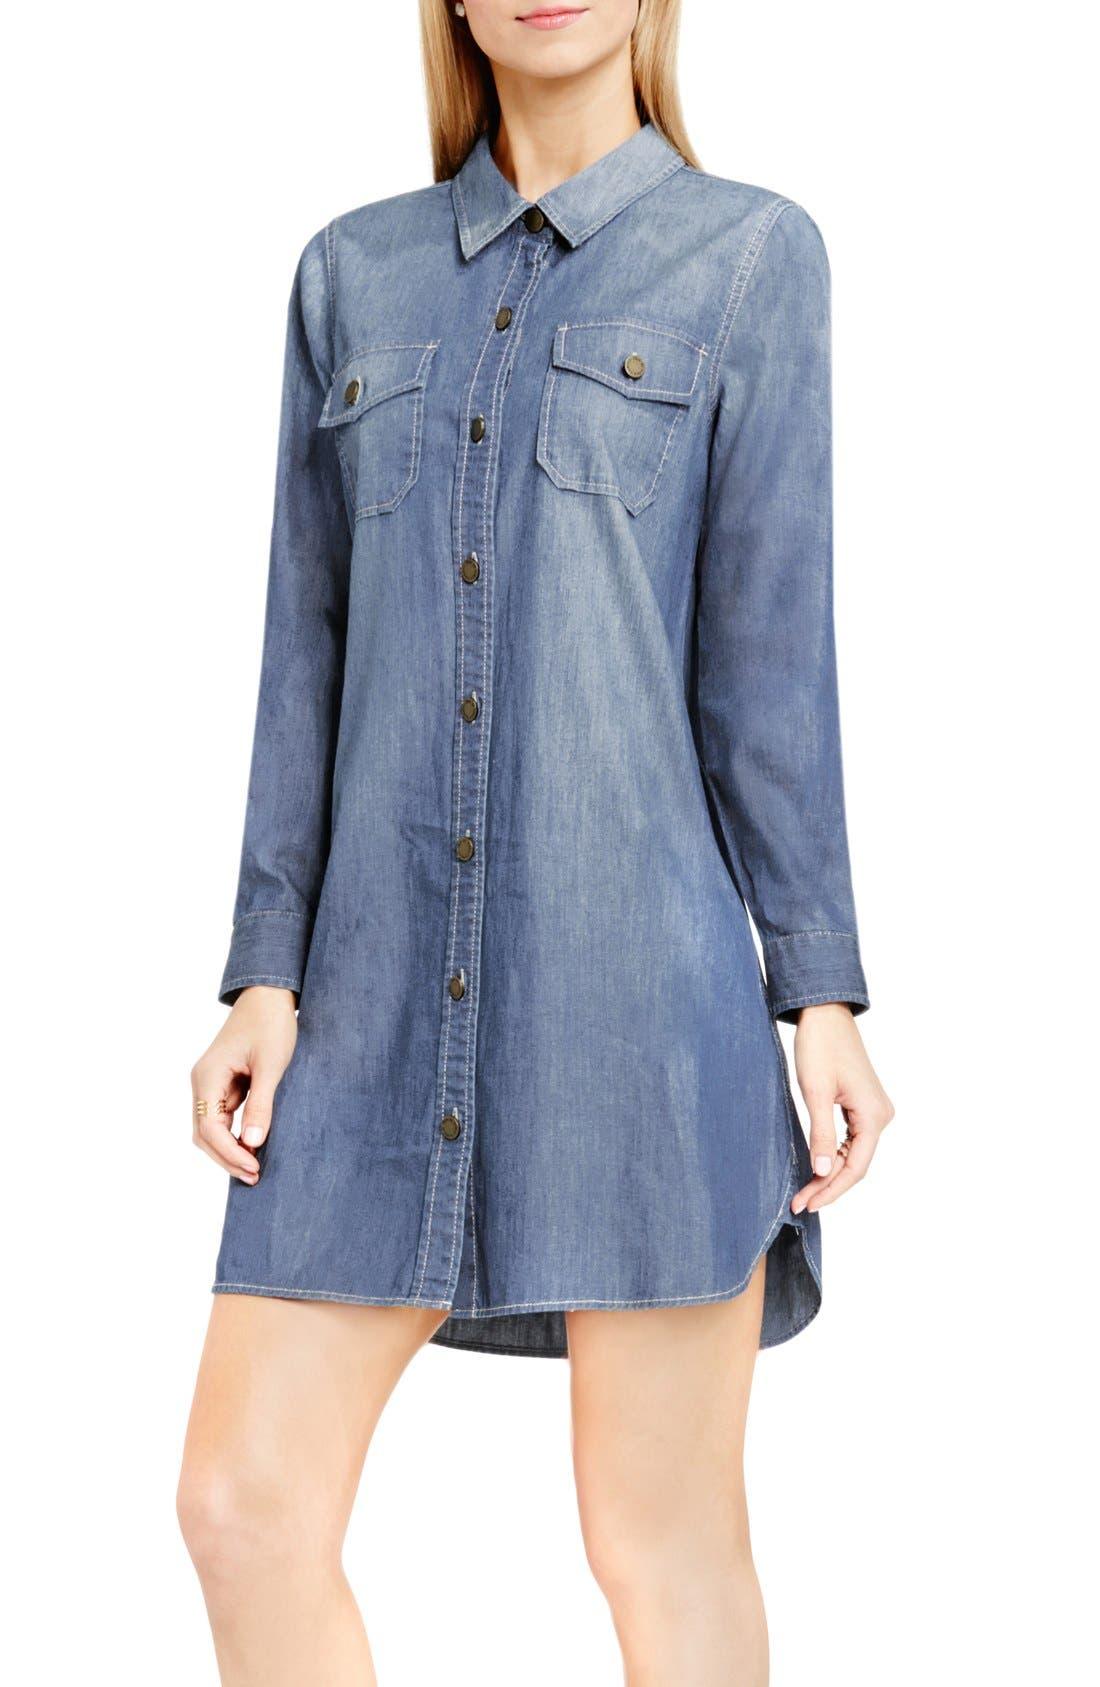 Main Image - Two by Vince Camuto Denim Shirtdress